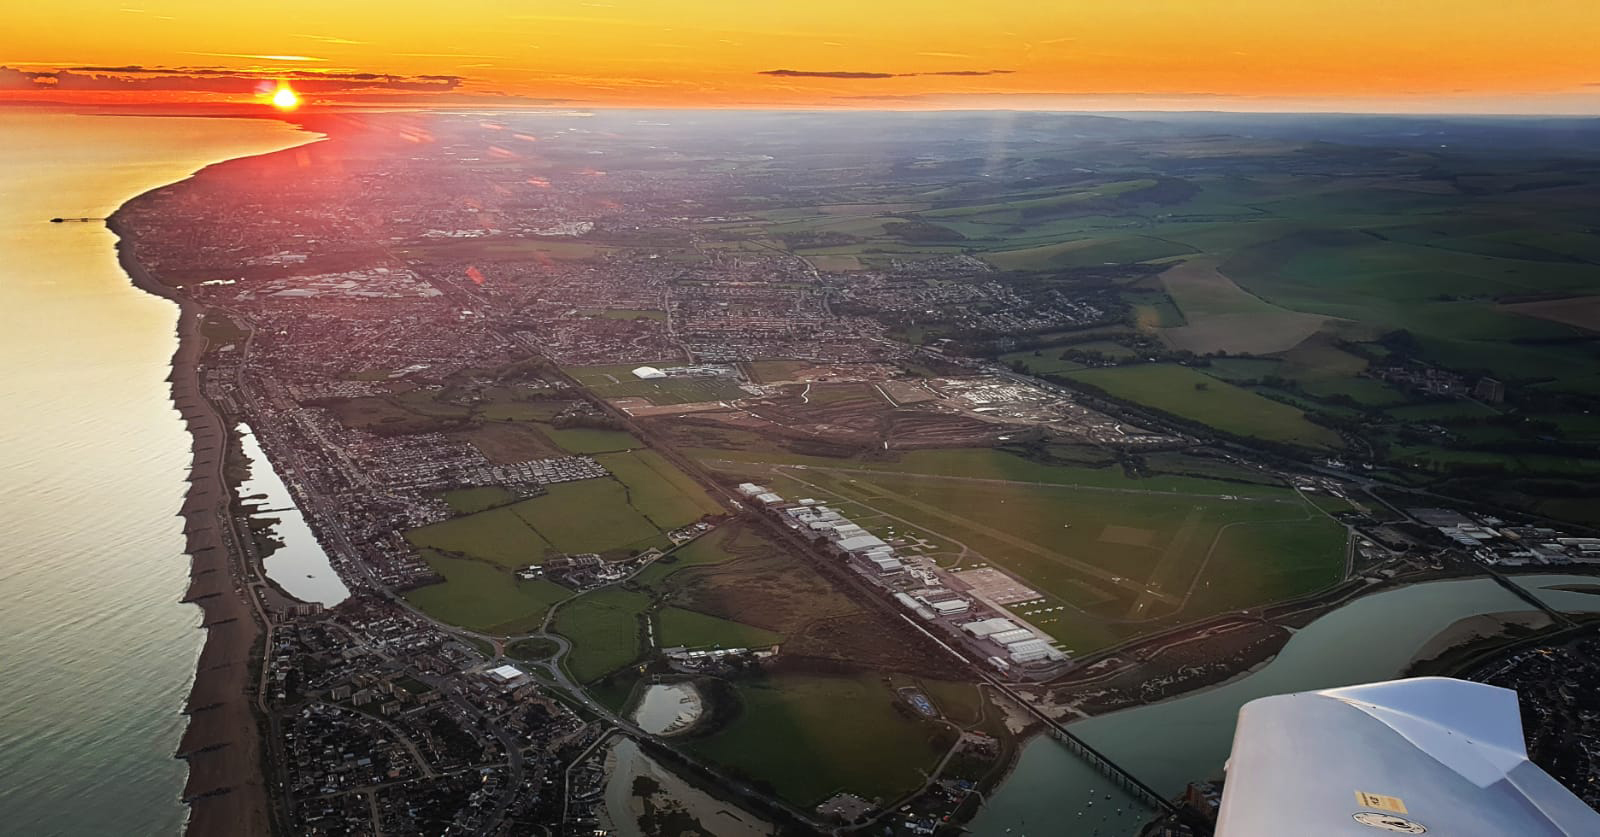 nidal-aerial-sunshine-shoreham-airfield-photo-image